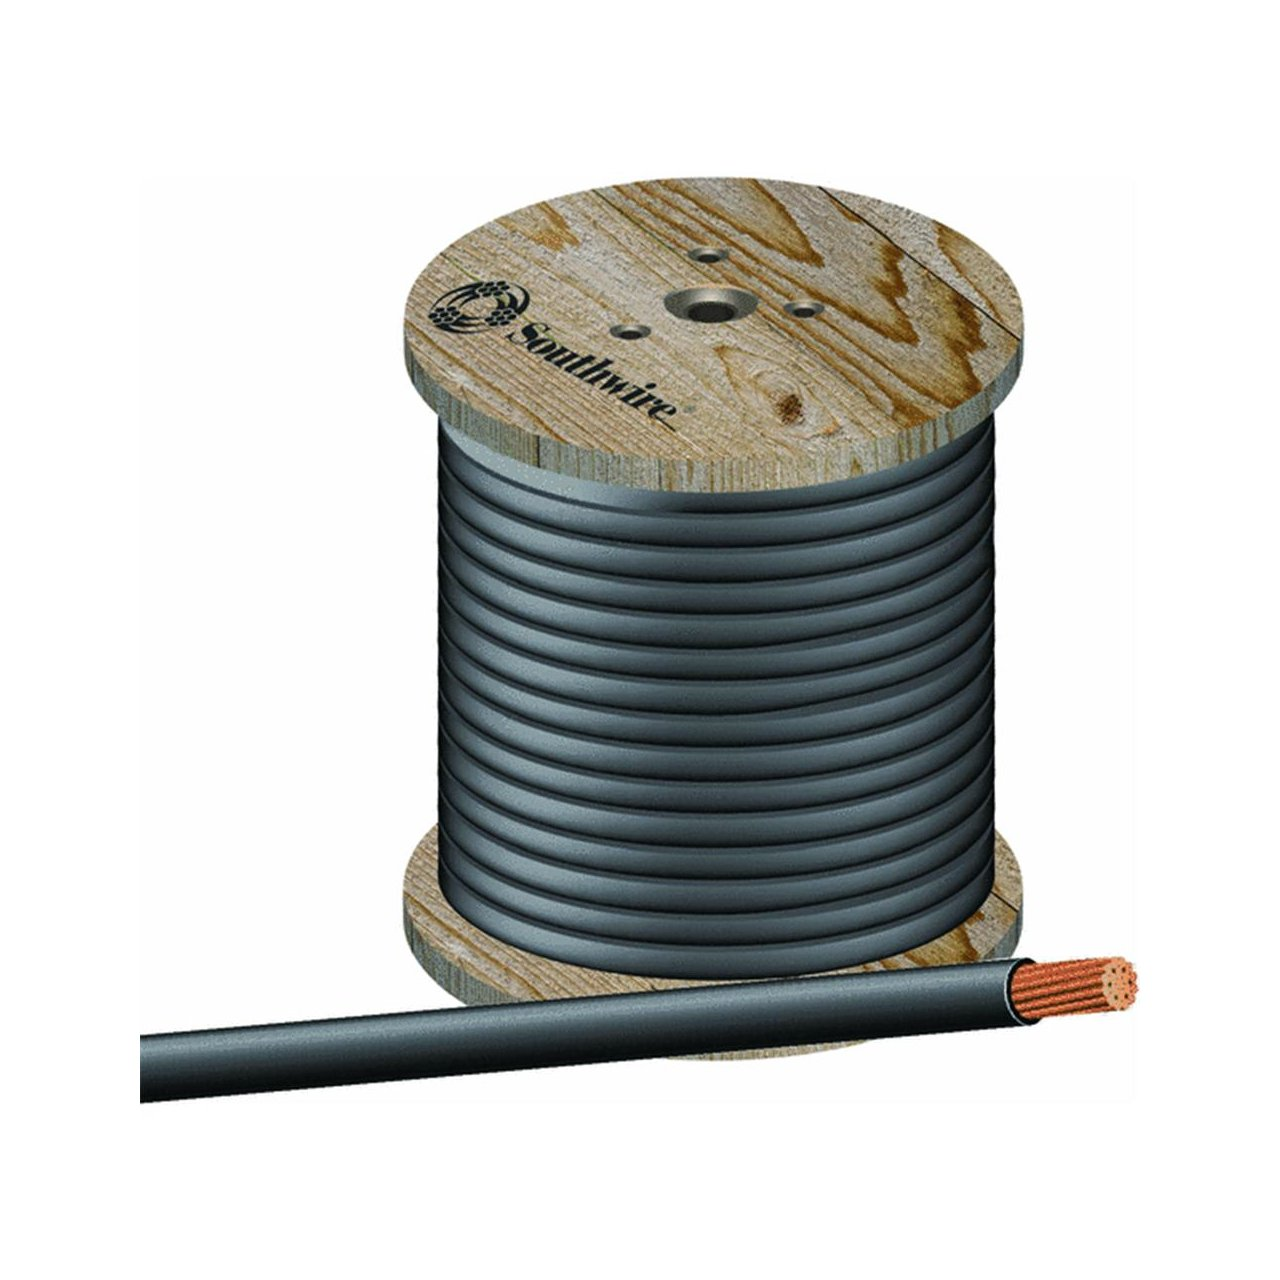 Use Underground Service Entrance Cable Electrical Wires House Wiring Aluminum Wire